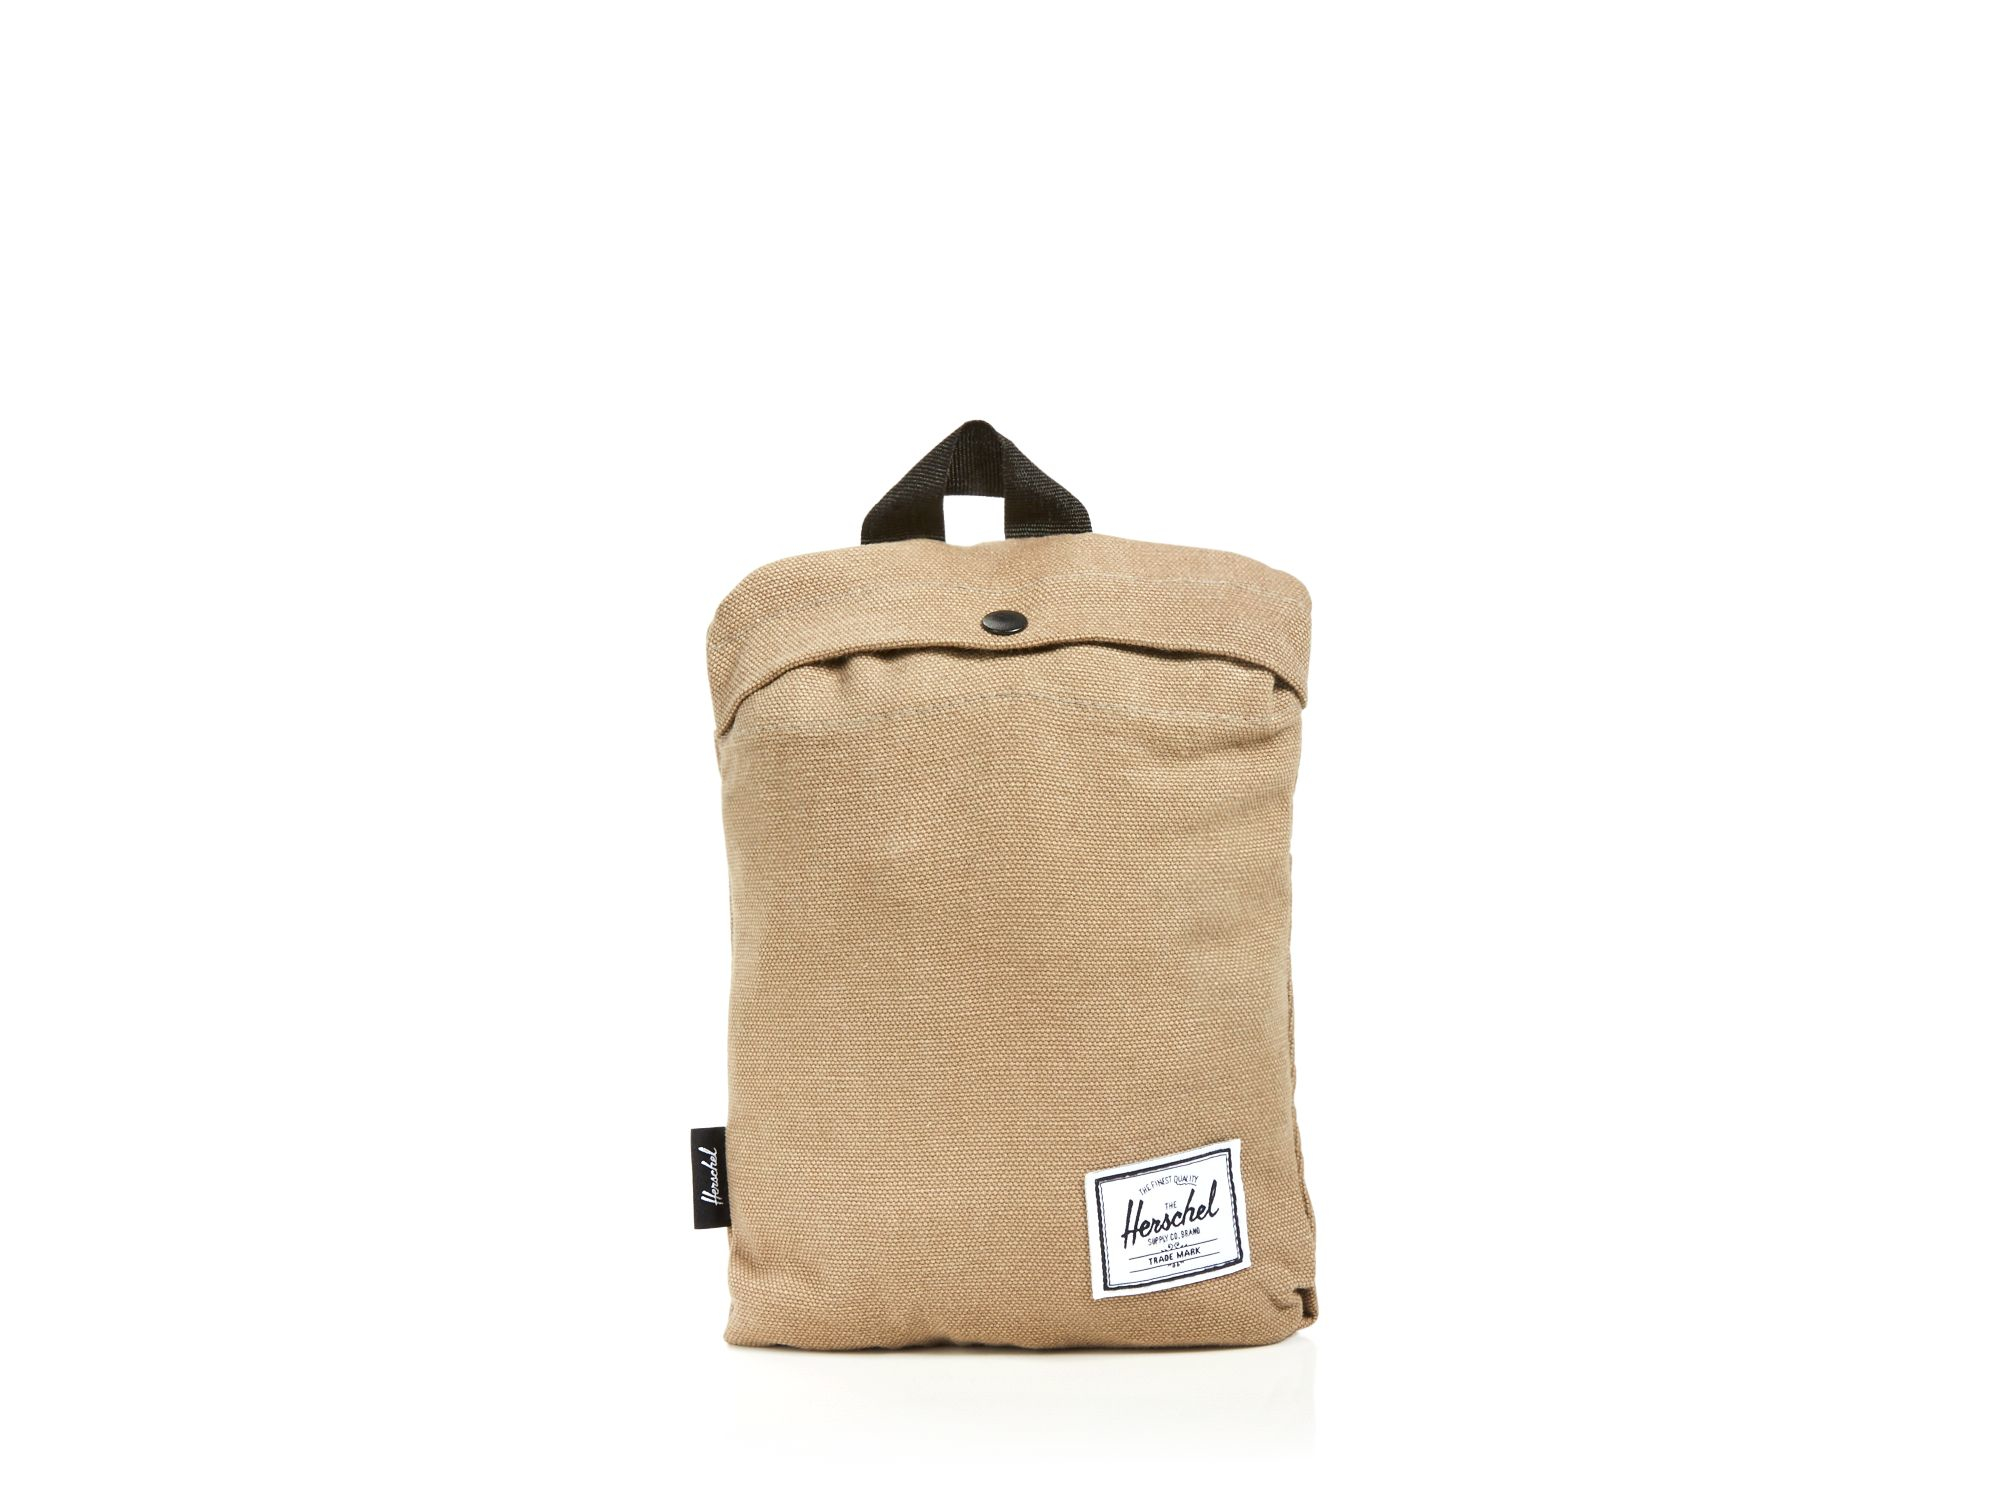 herschel supply co packable daypack in beige for men lead green lyst. Black Bedroom Furniture Sets. Home Design Ideas